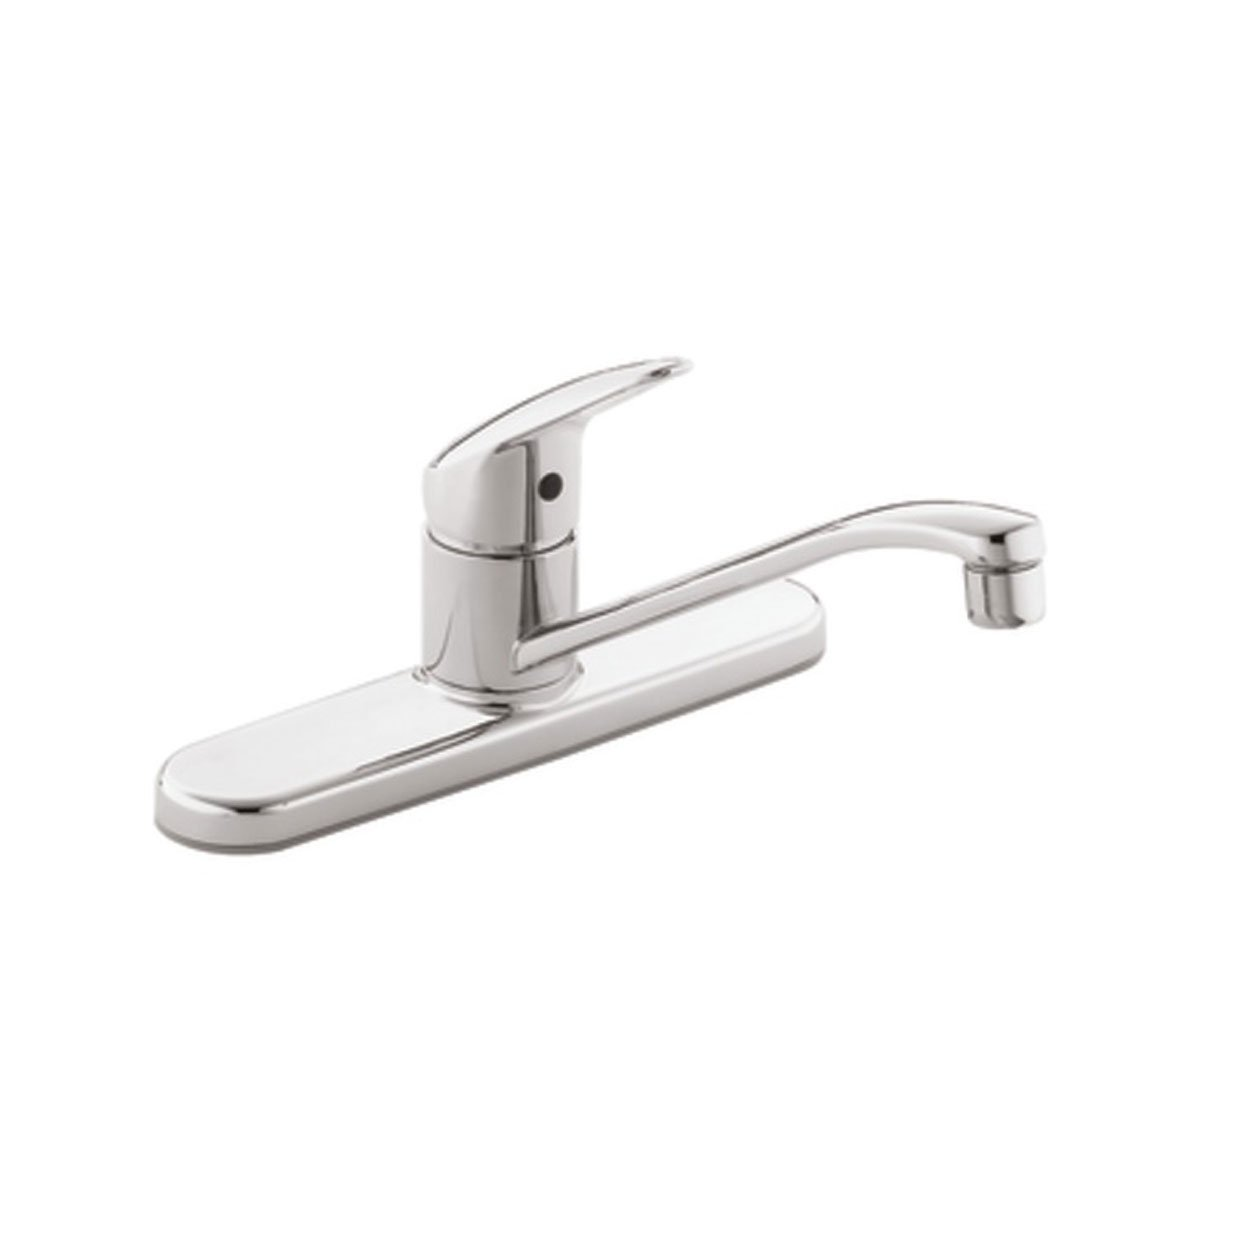 Cleveland Faucets CA40511 Cornerstone Single-Handle Kitchen Faucet, Chrome